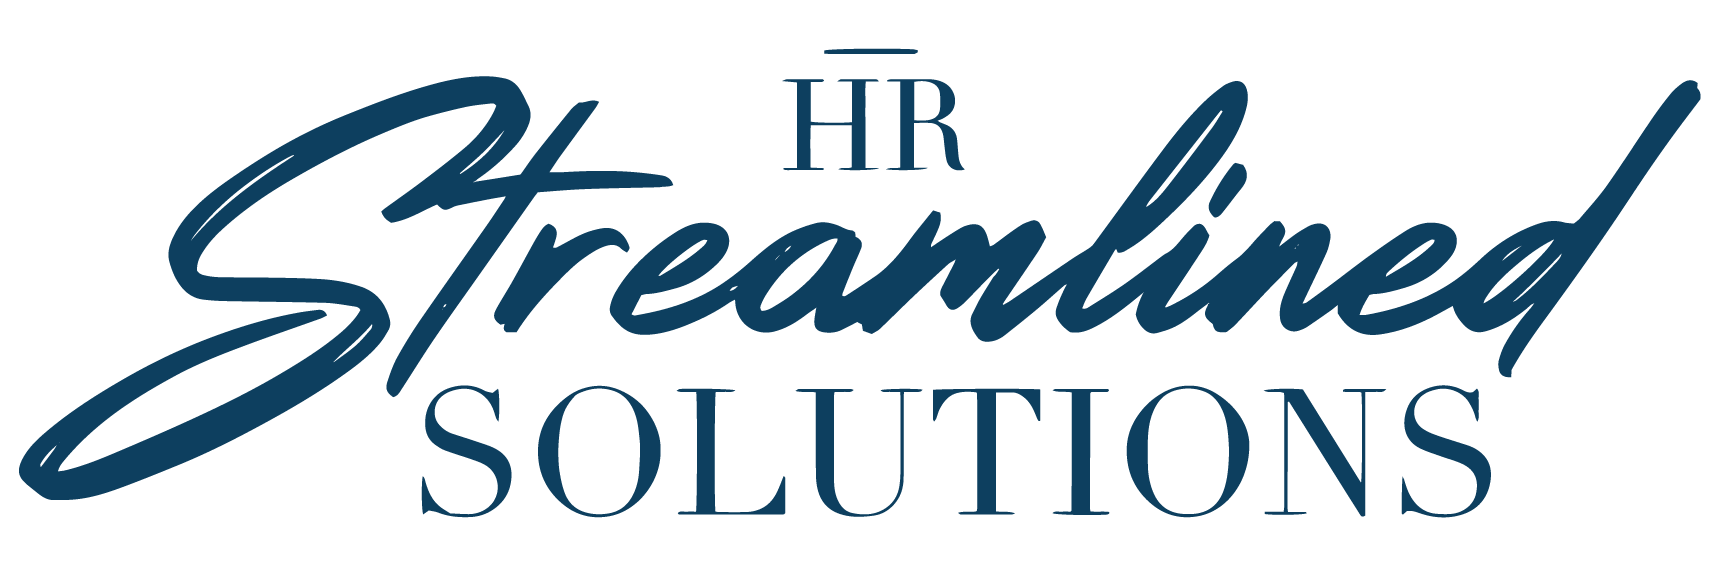 HR Streamlined Solutions